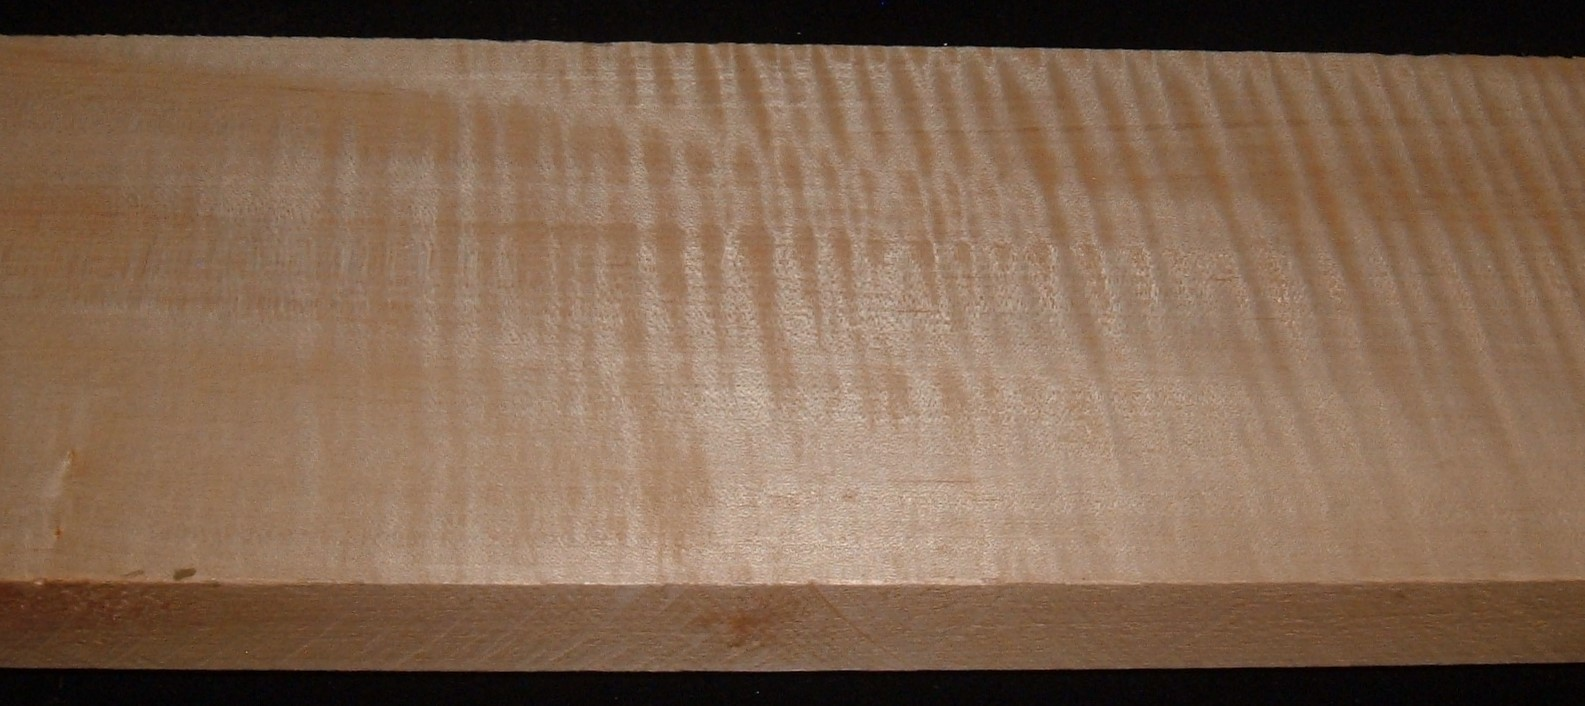 QS2104-61JK, 1-3/16x5-1/2x47, Quartersawn Curly Maple